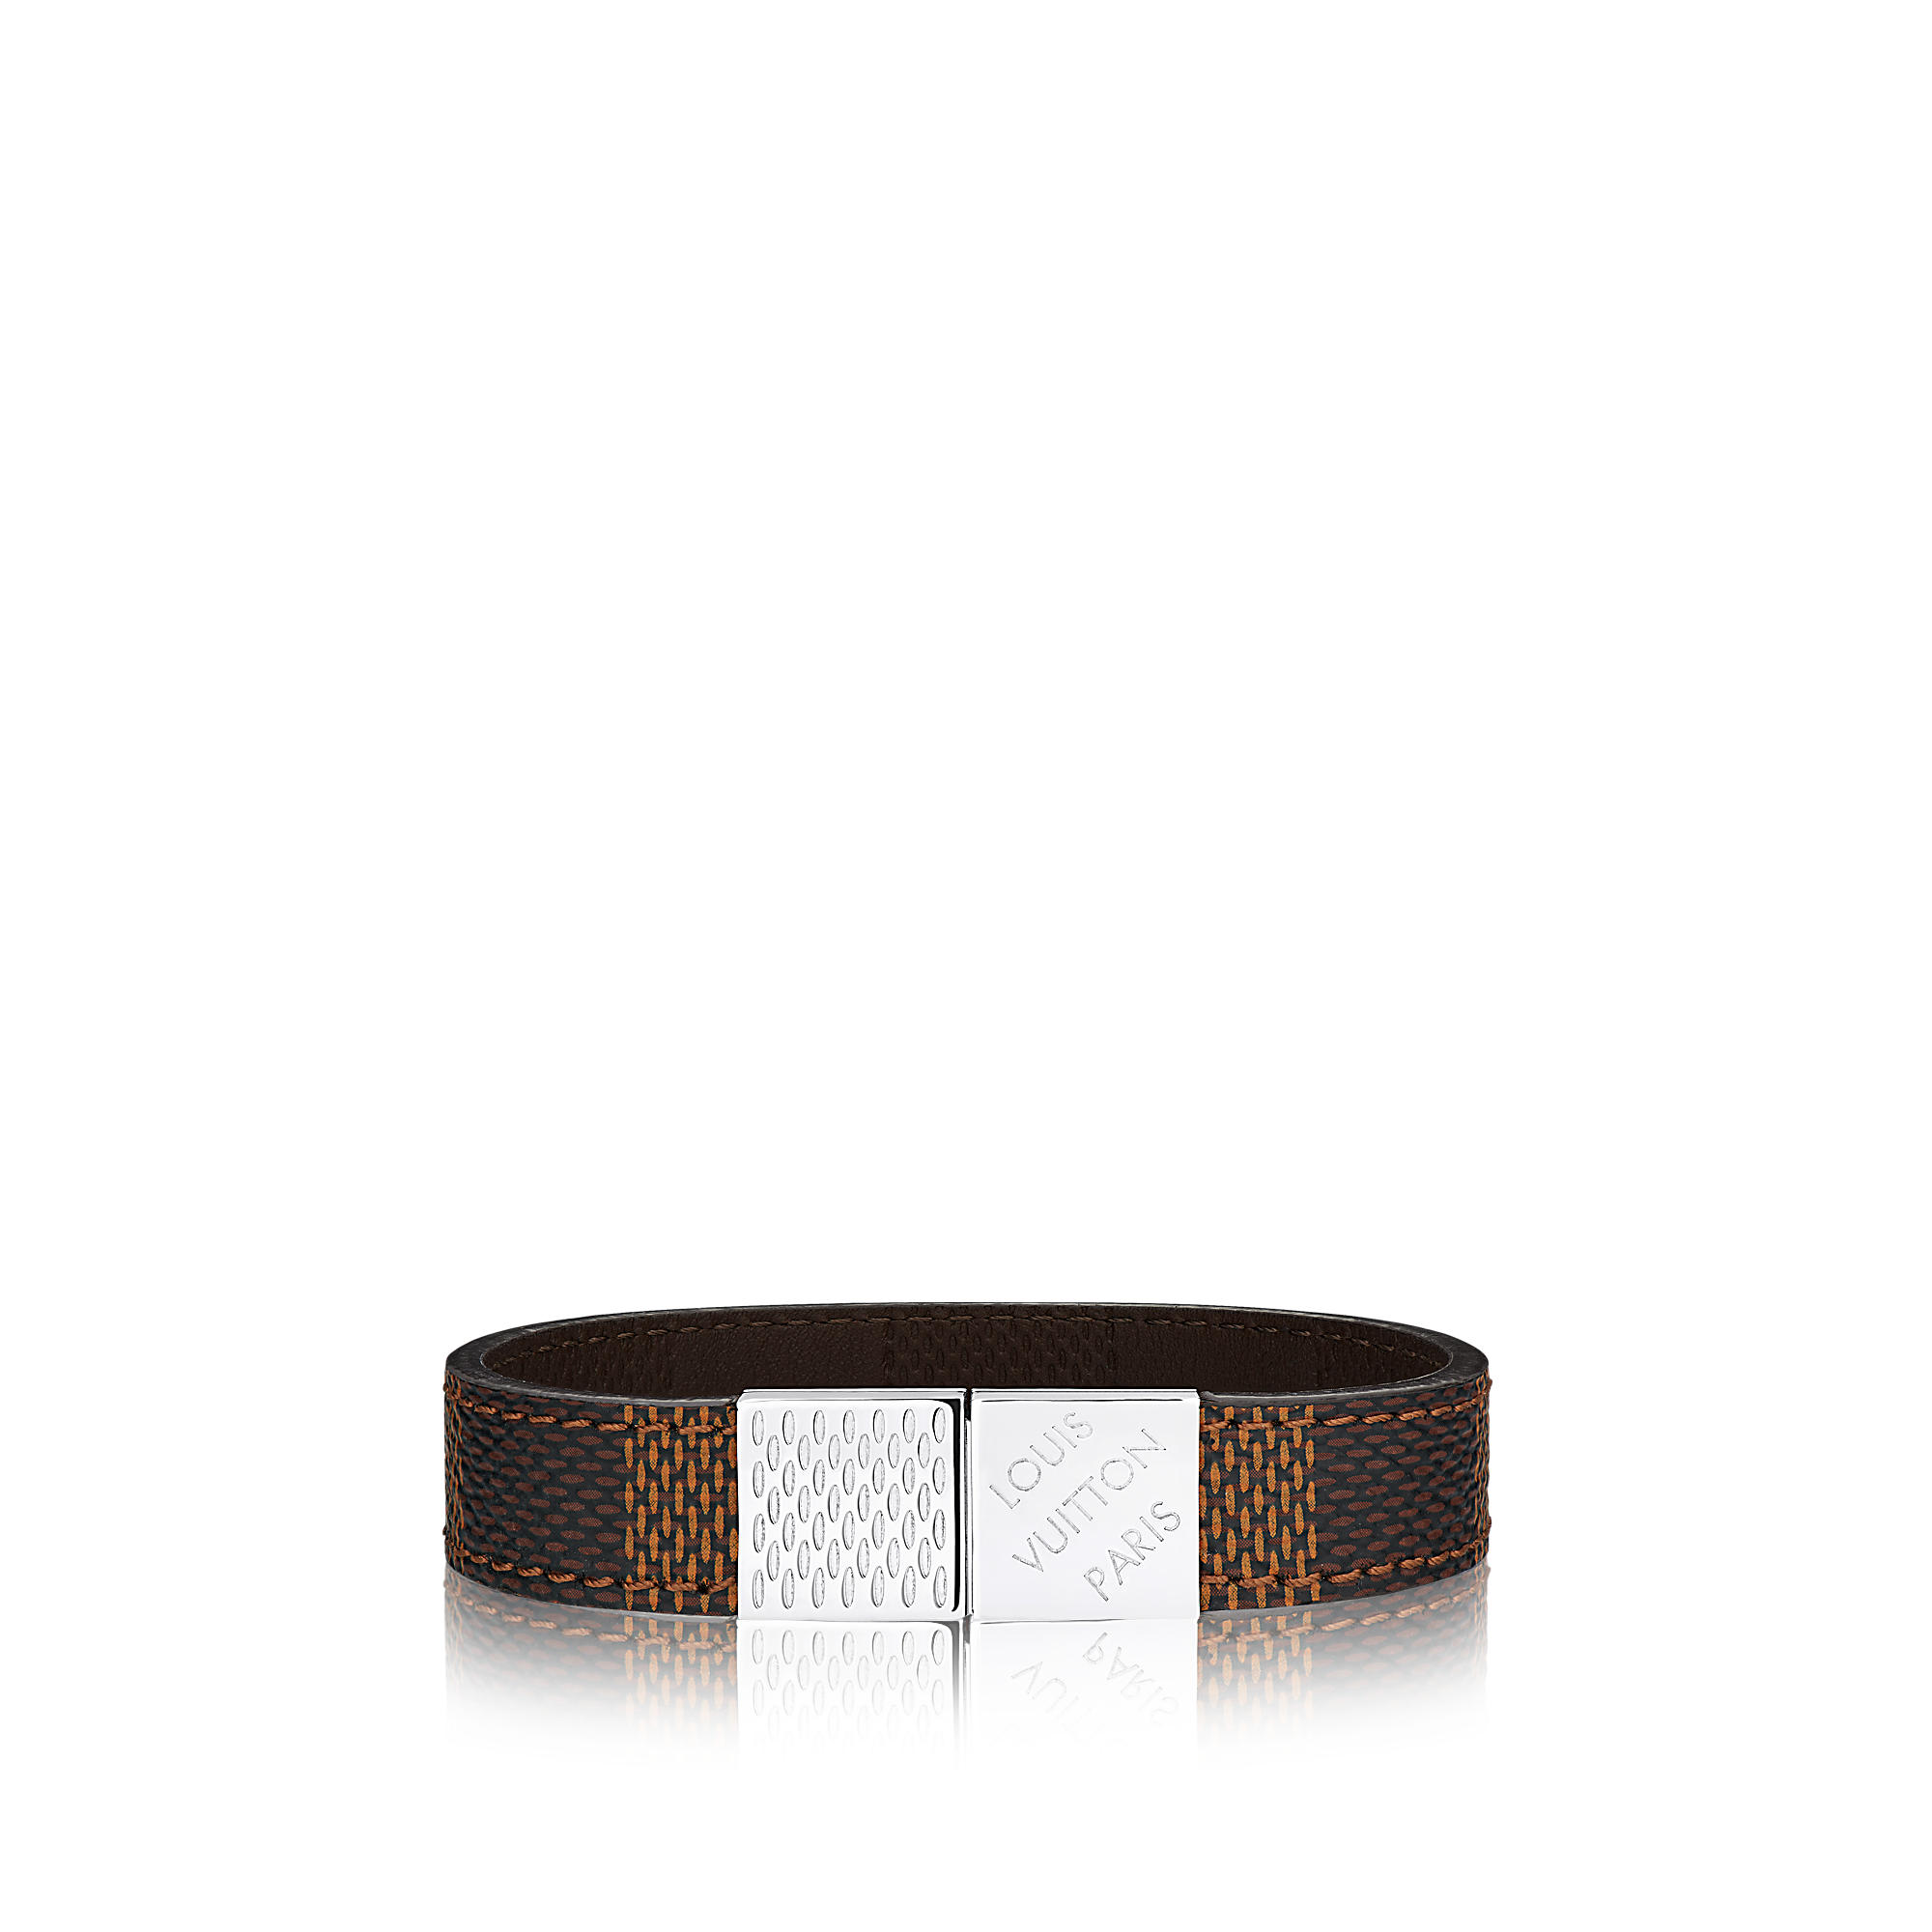 Louis Vuitton Uomo Bracciale Pull It